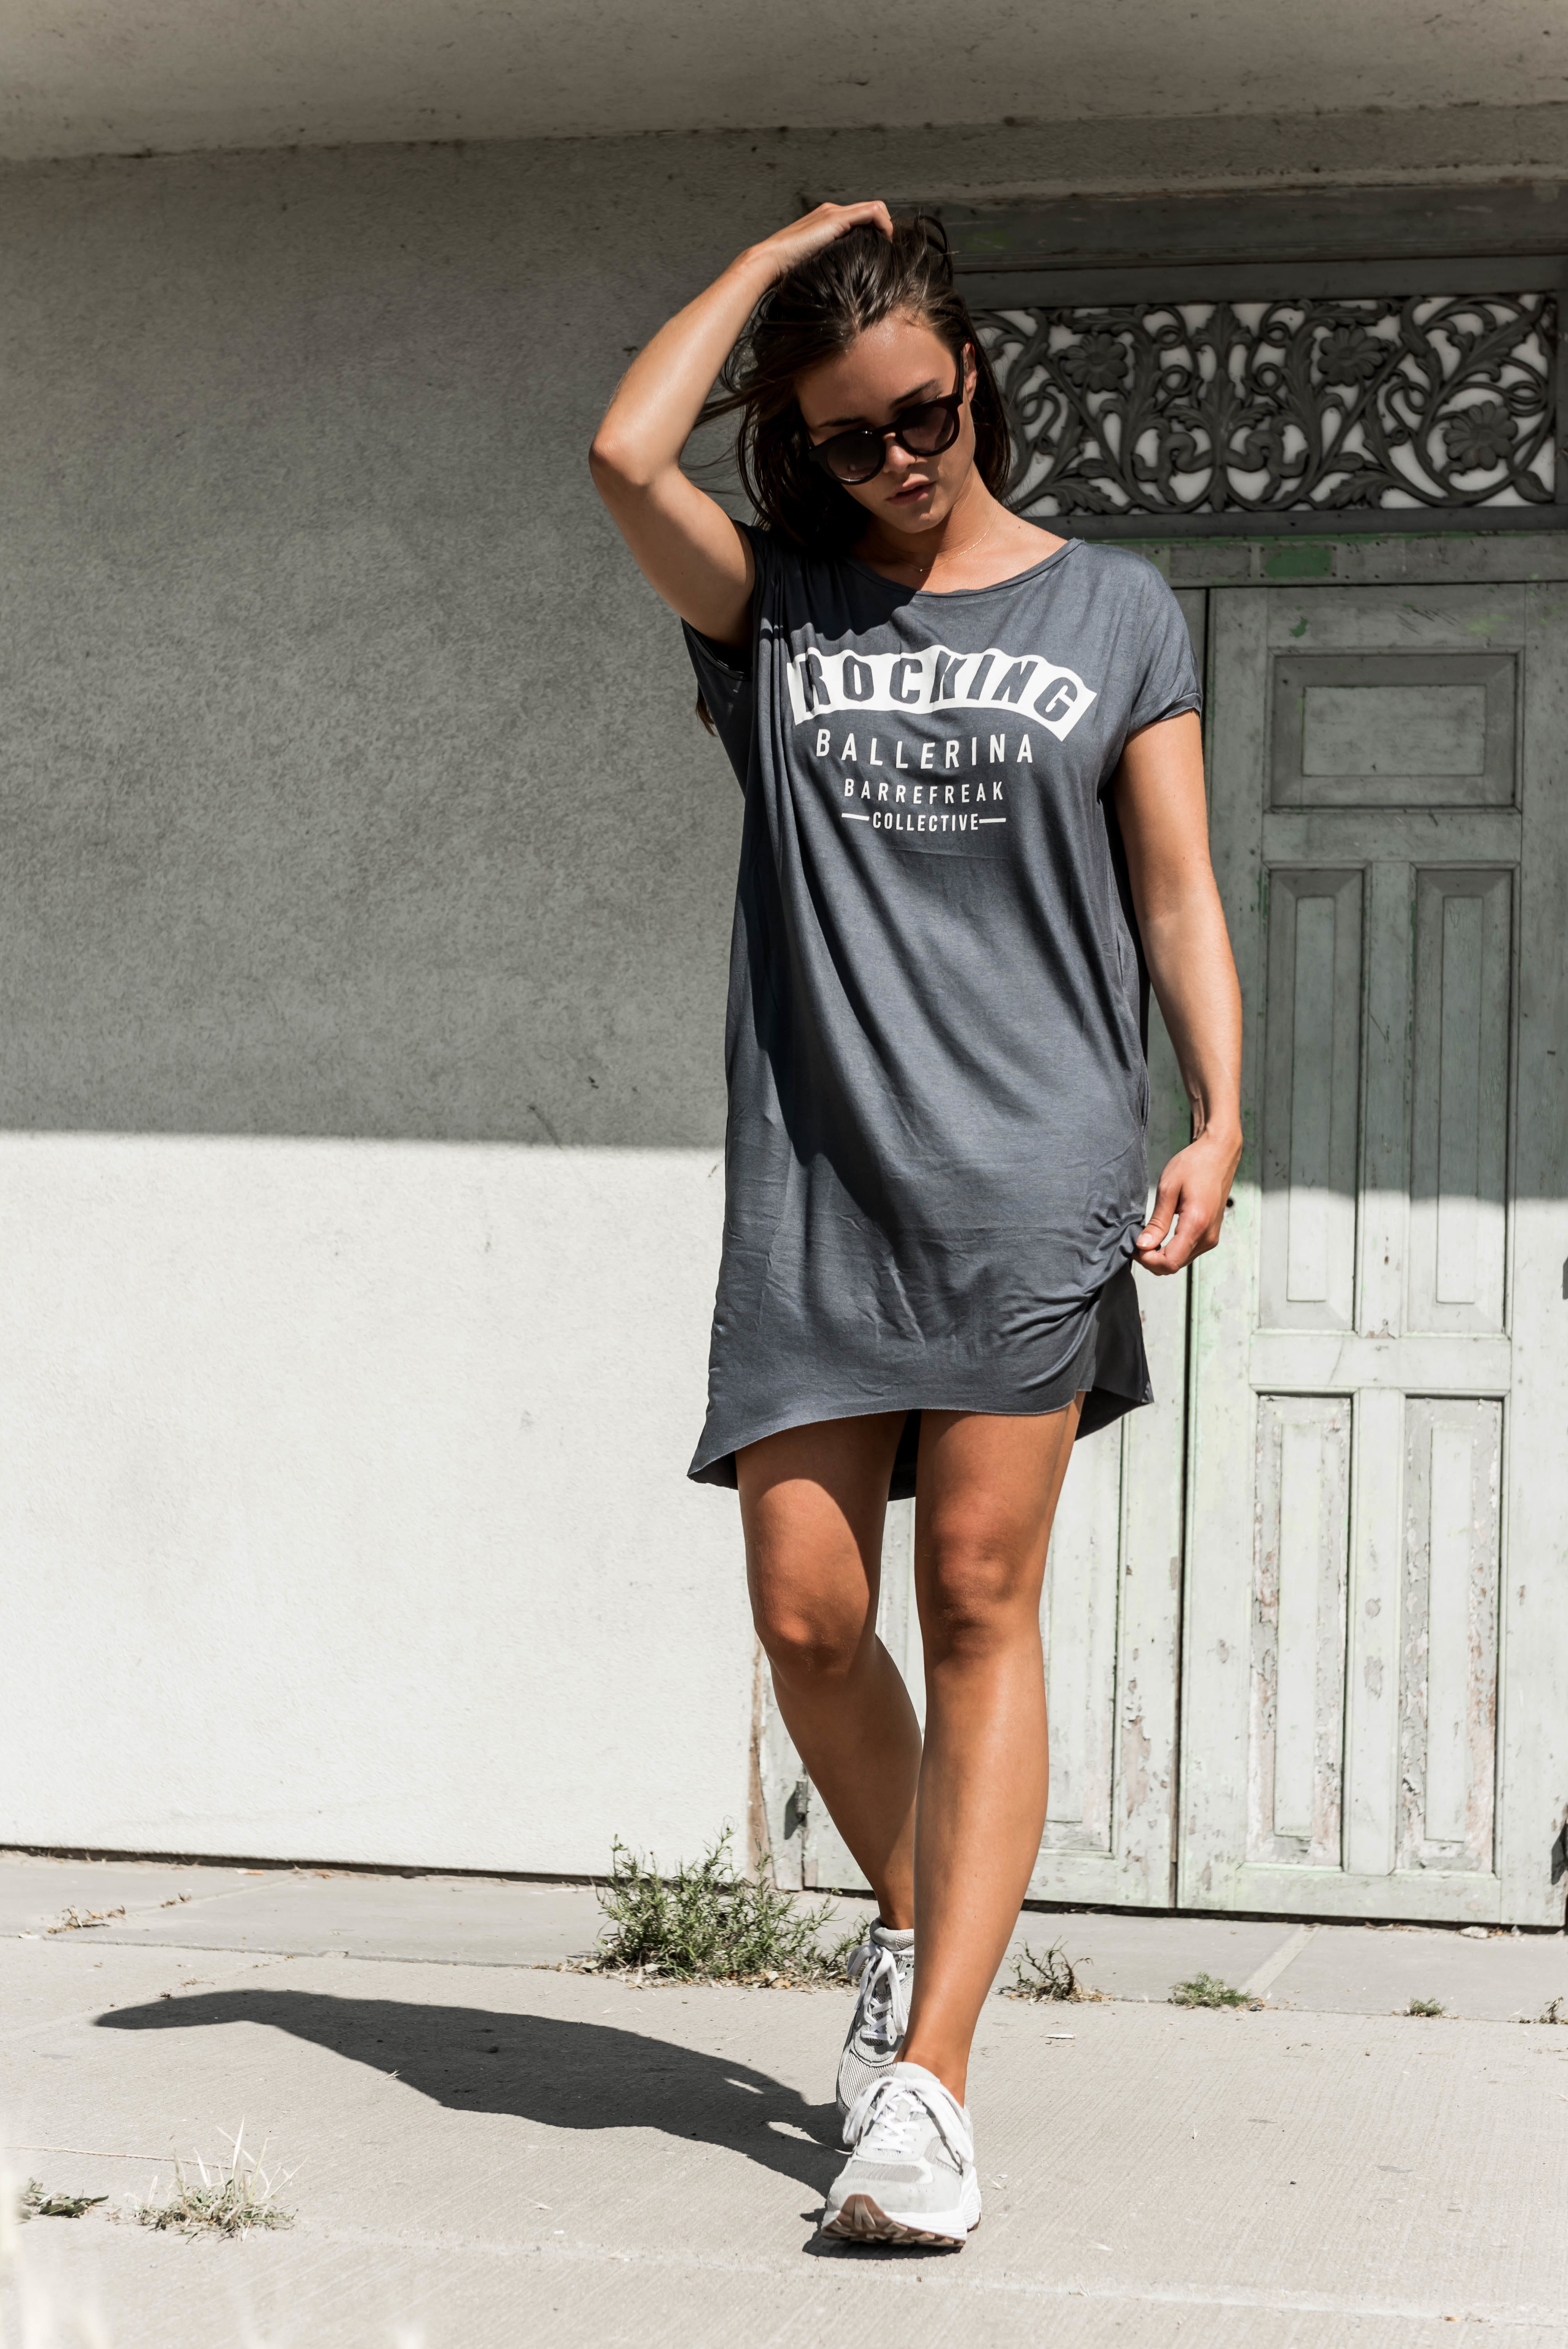 GREY T'SHIRT-DRESS ROCKING BALLERINA